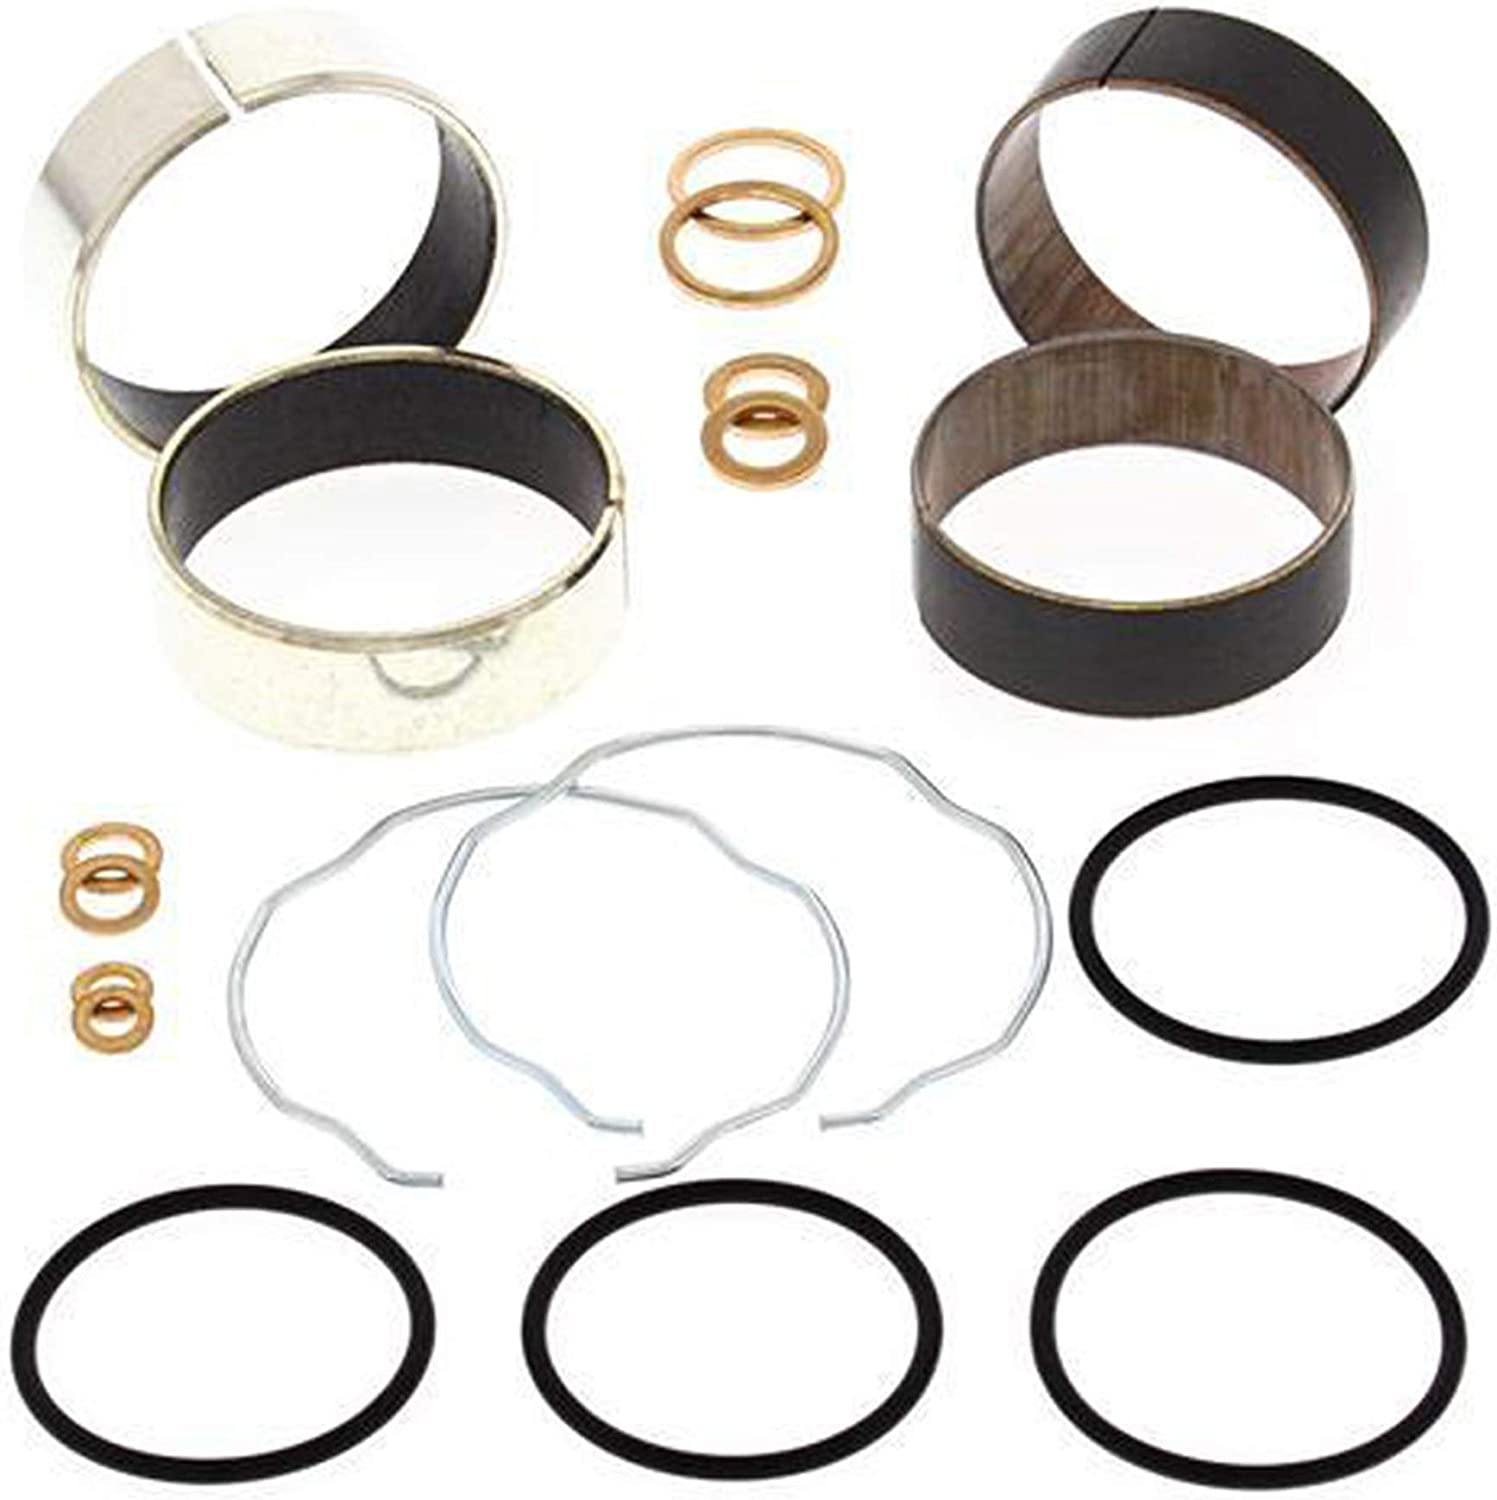 Fork Seal and Dust Kit 2007 Suzuki DL650A V-Strom ABS Street Motorcycle